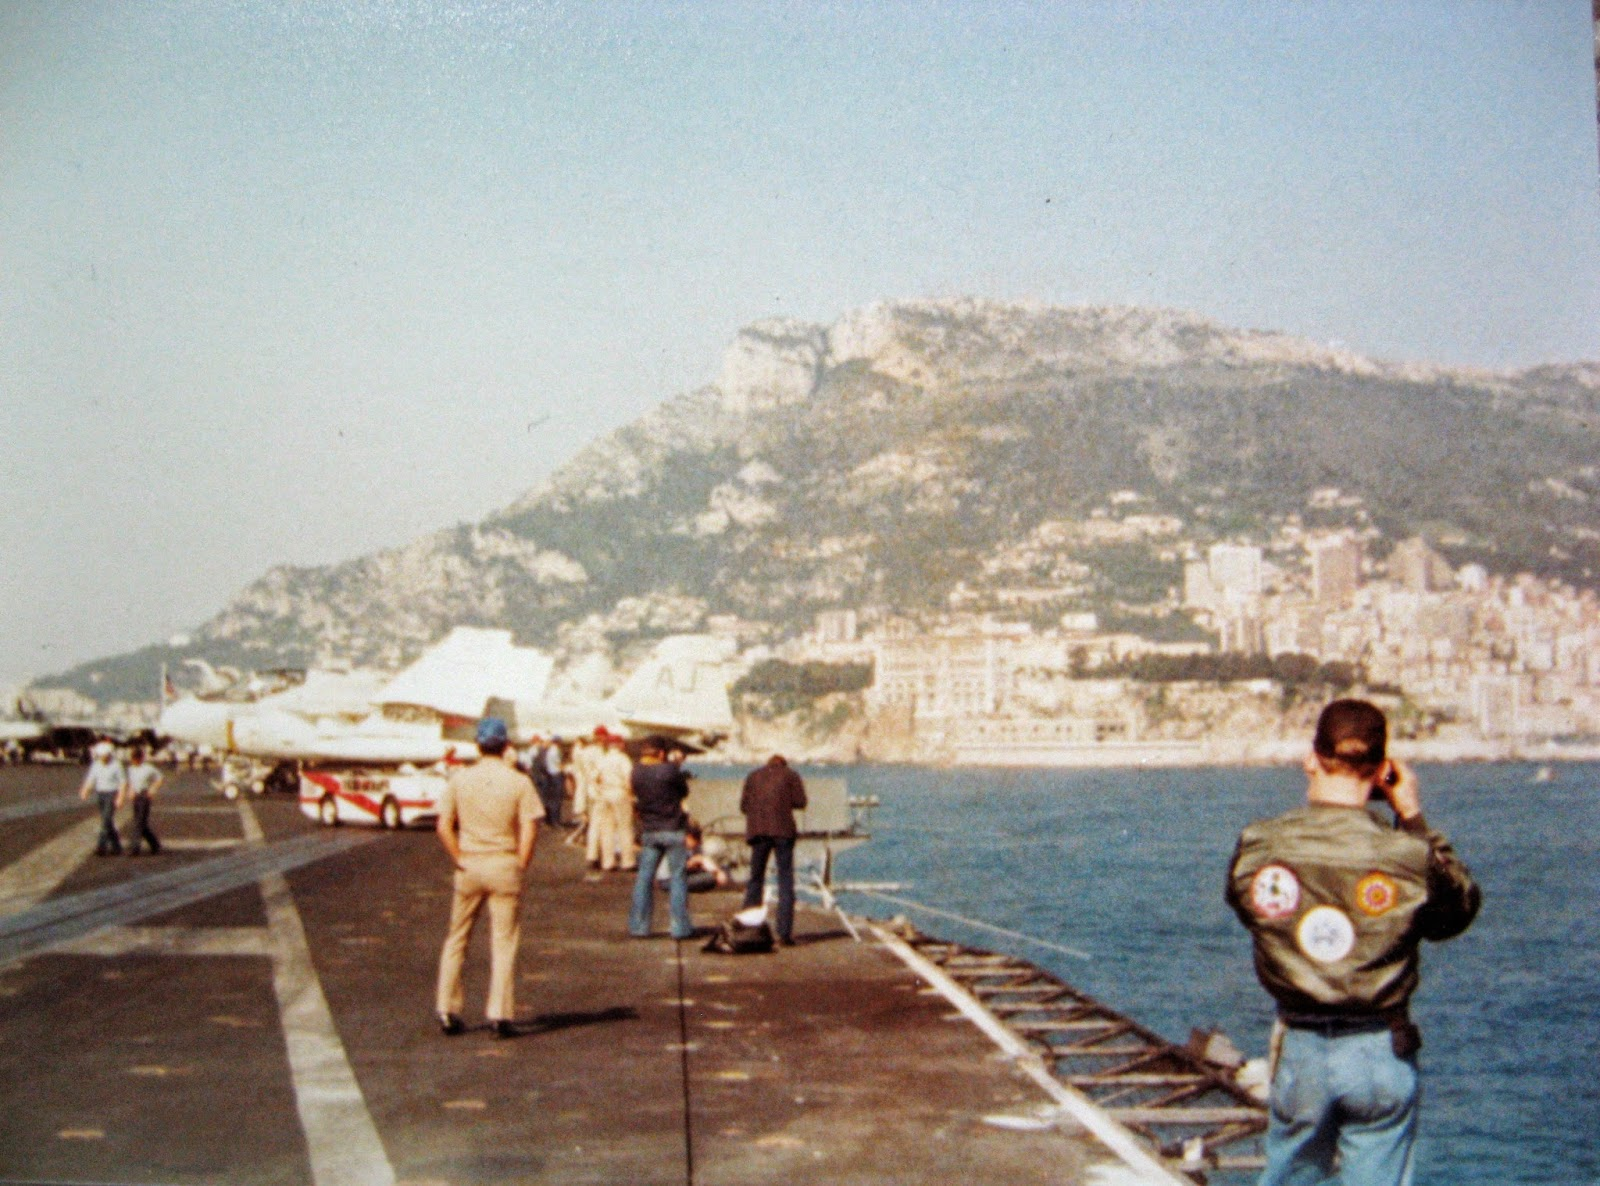 Took this from the Nimitz flight deck off the coast of Monaco 1983